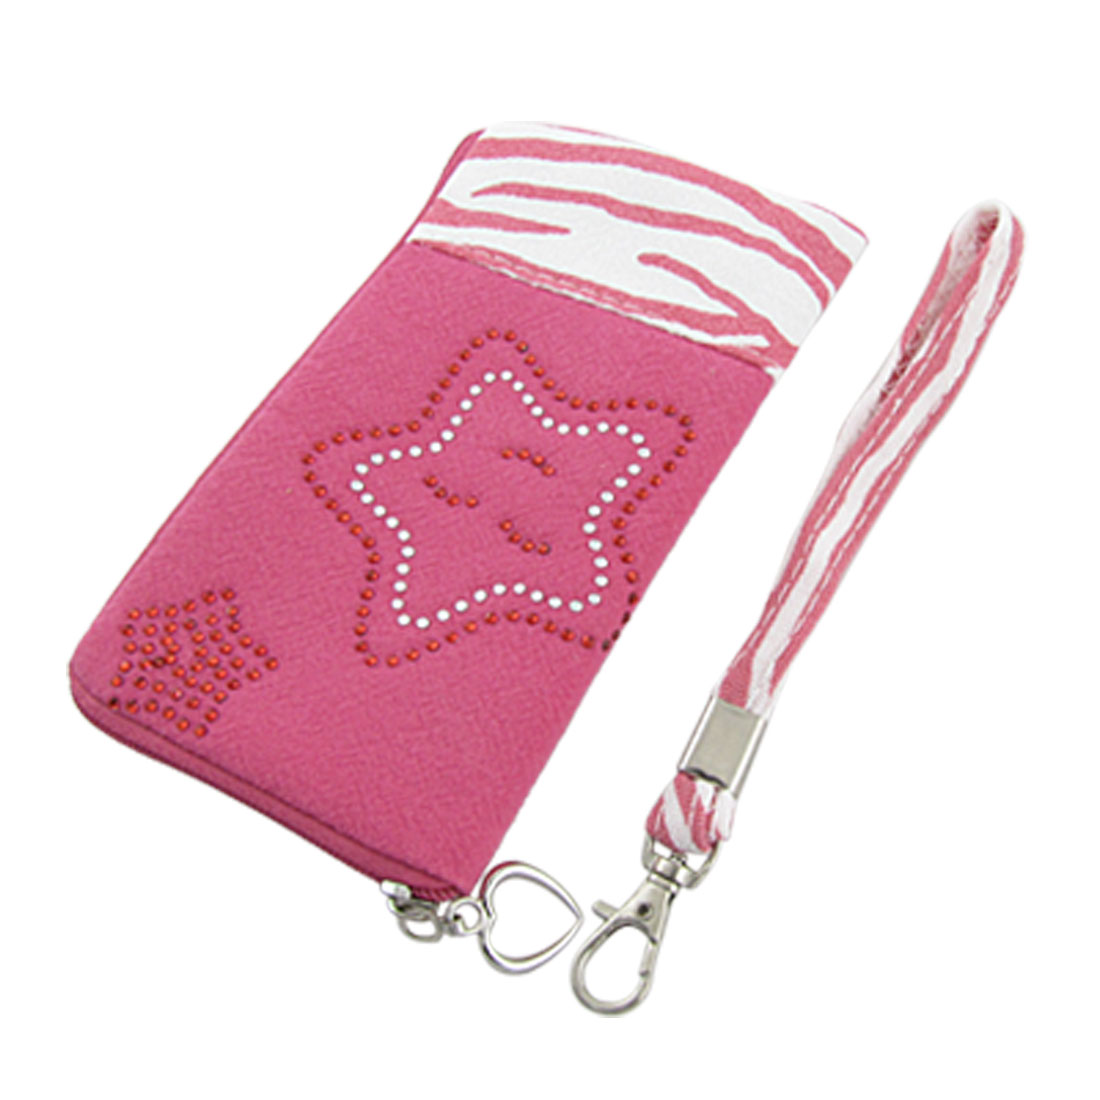 Zebra Print L Shape Zip Up Hand Pouch Rose Pink